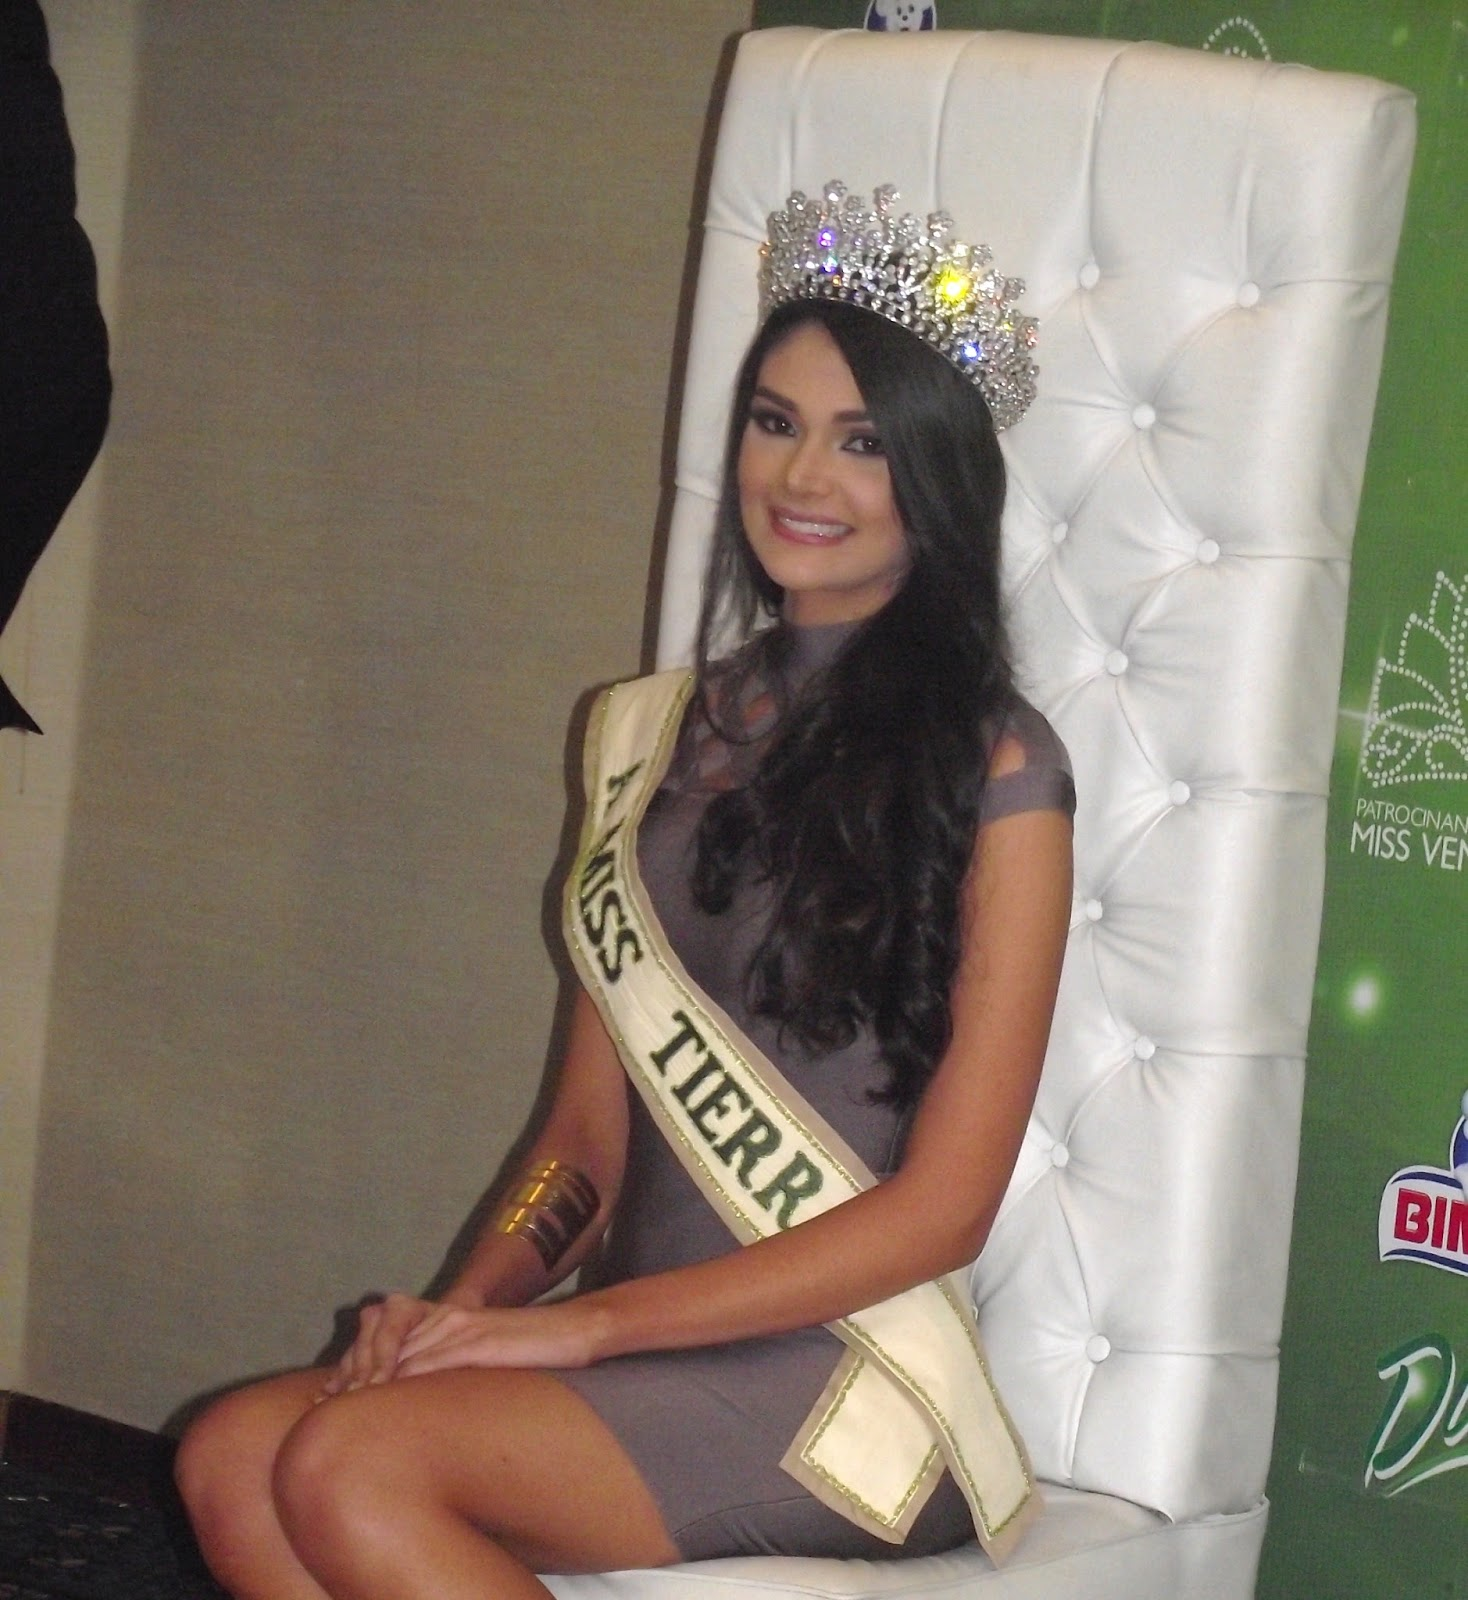 andrea rosales, miss earth venezuela 2015 (top 8 de miss earth 2015). 3qe69lns